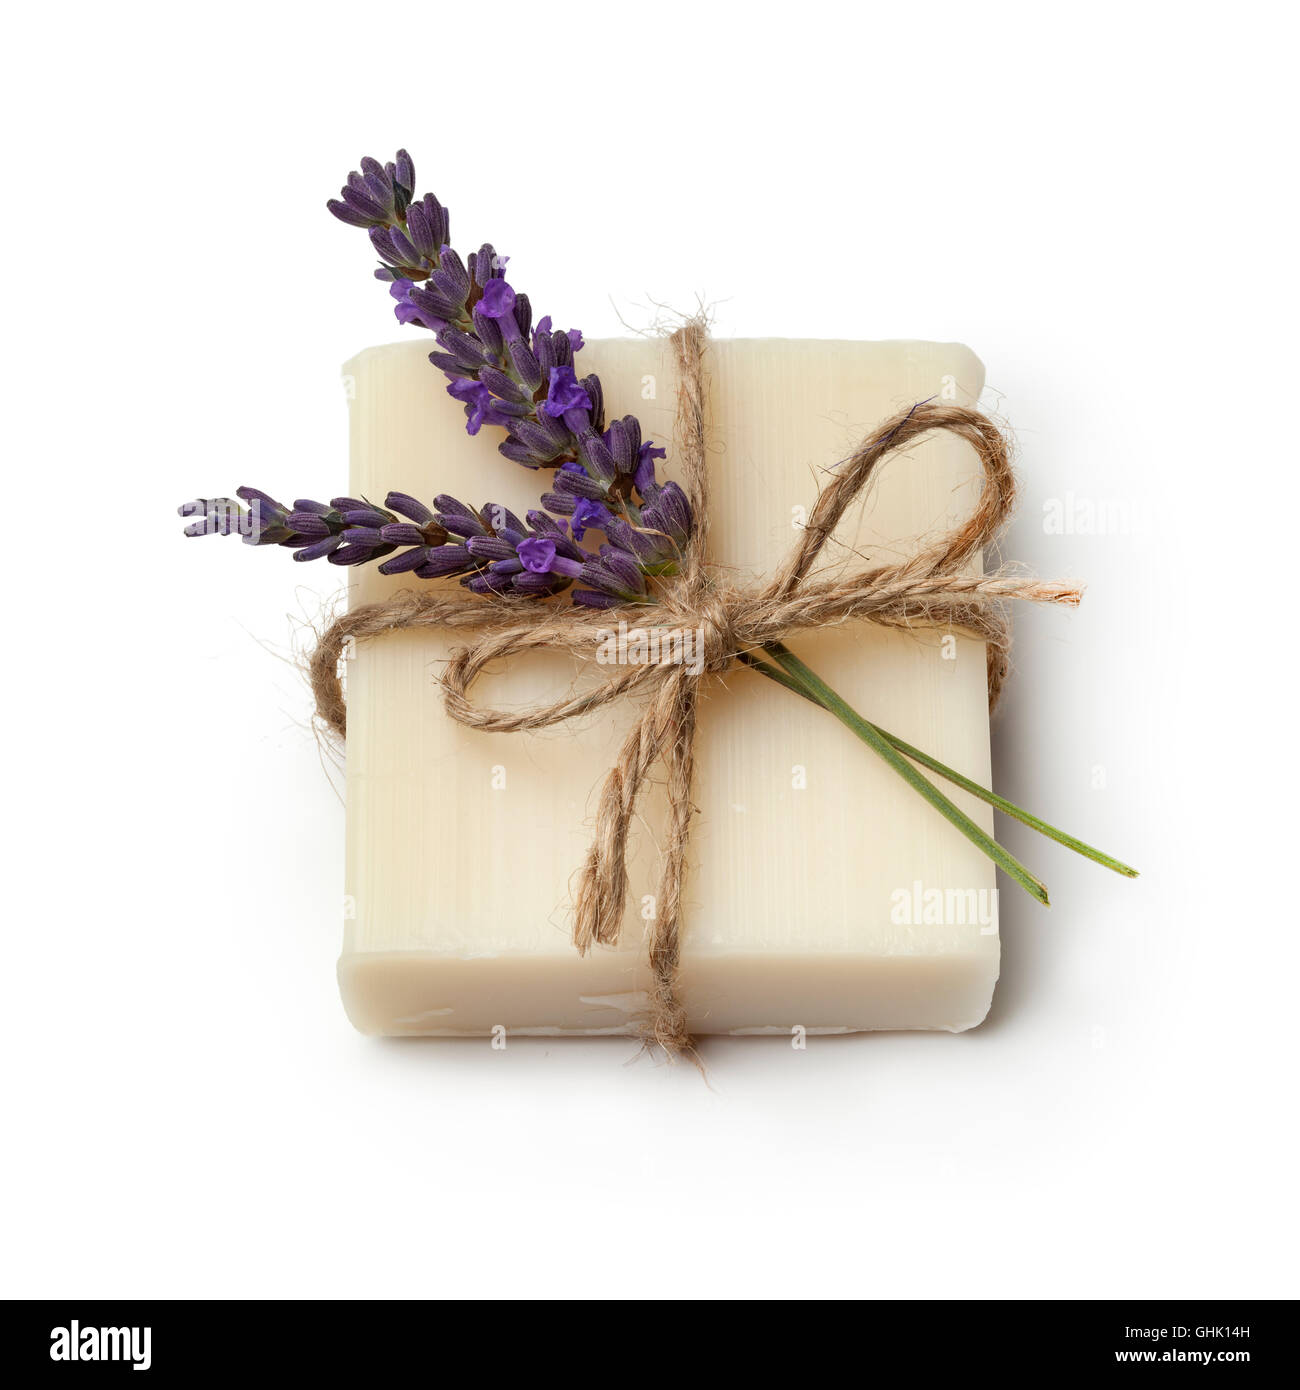 Piece of lavender soap and fresh lavender on white background - Stock Image